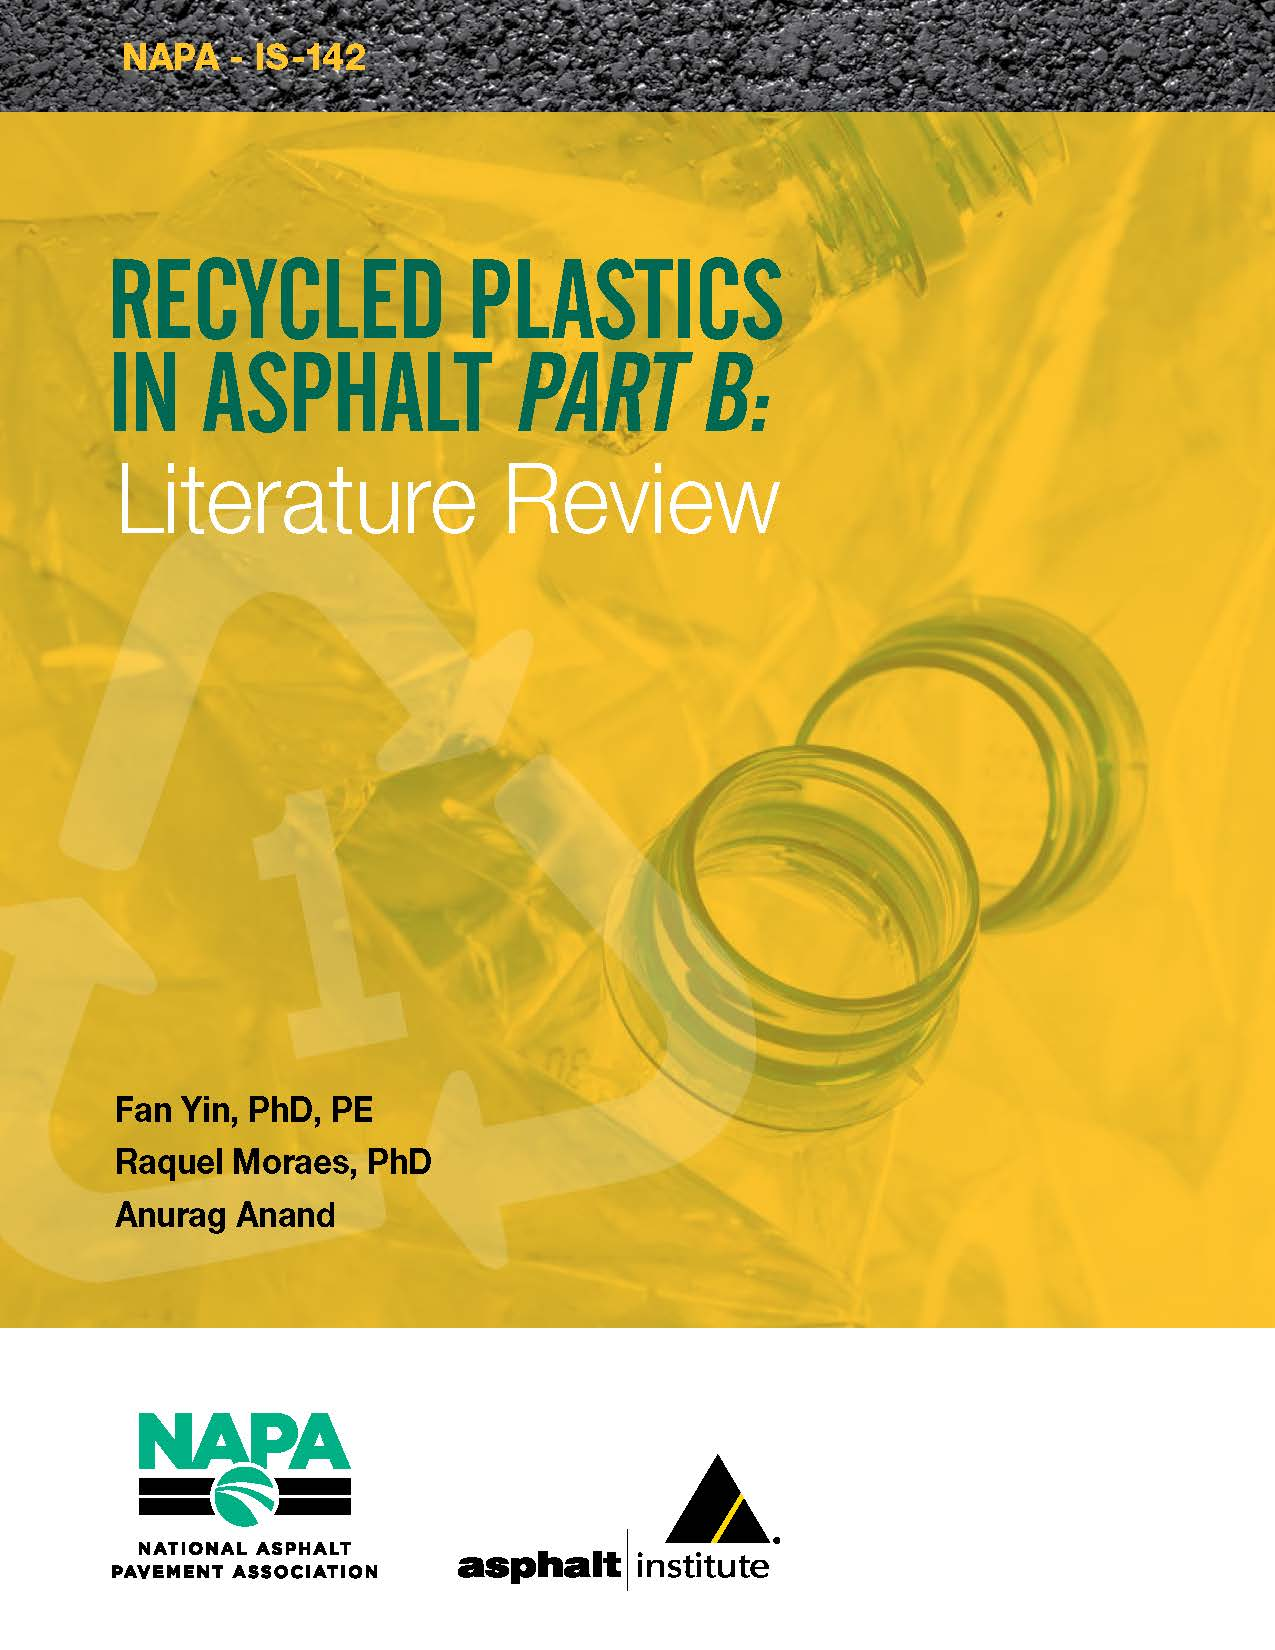 Recycled Plastics in Asphalt Part B: Literature Review